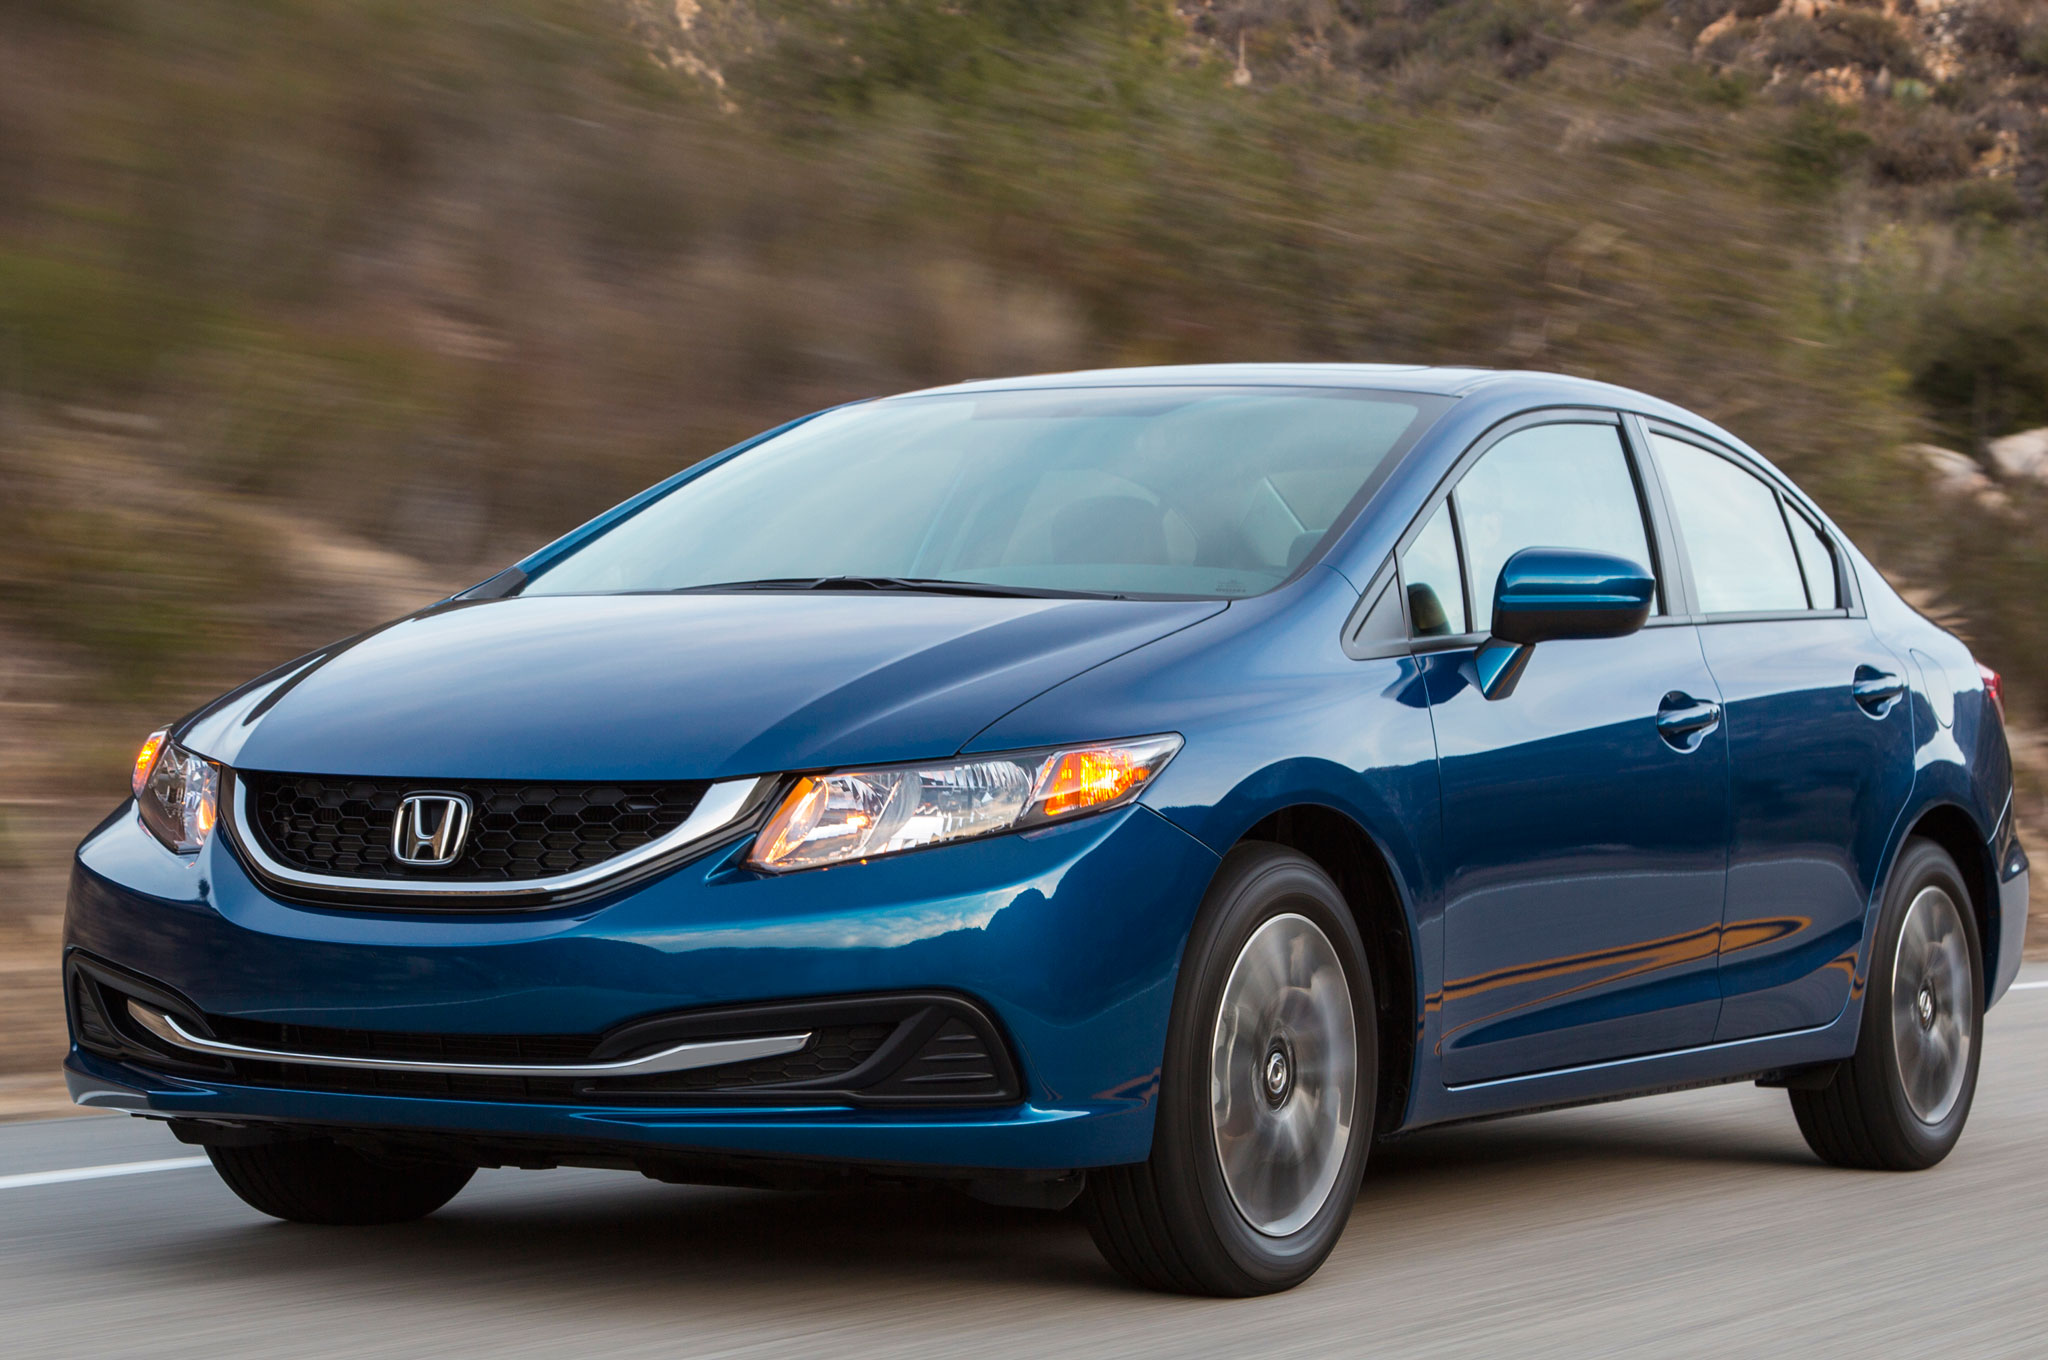 Honda Civic Sets World Record With 100-MPG Run Through 25 Countries